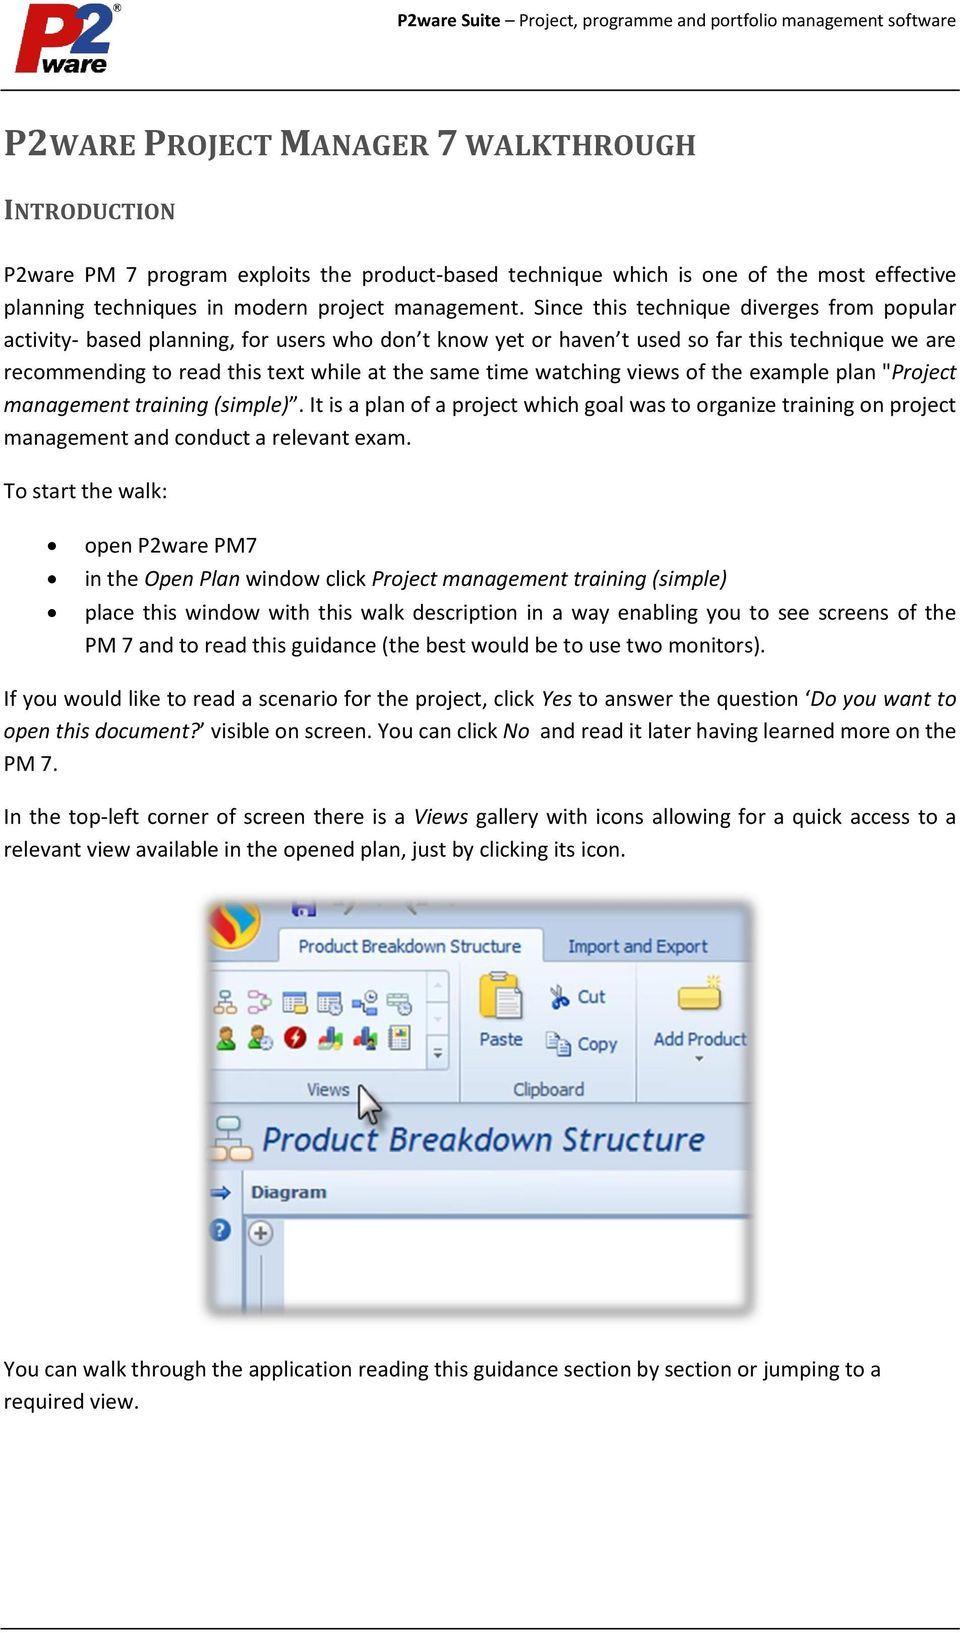 HOW TO START WORKING WITH P2WARE PROJECT MANAGER 7? - PDF